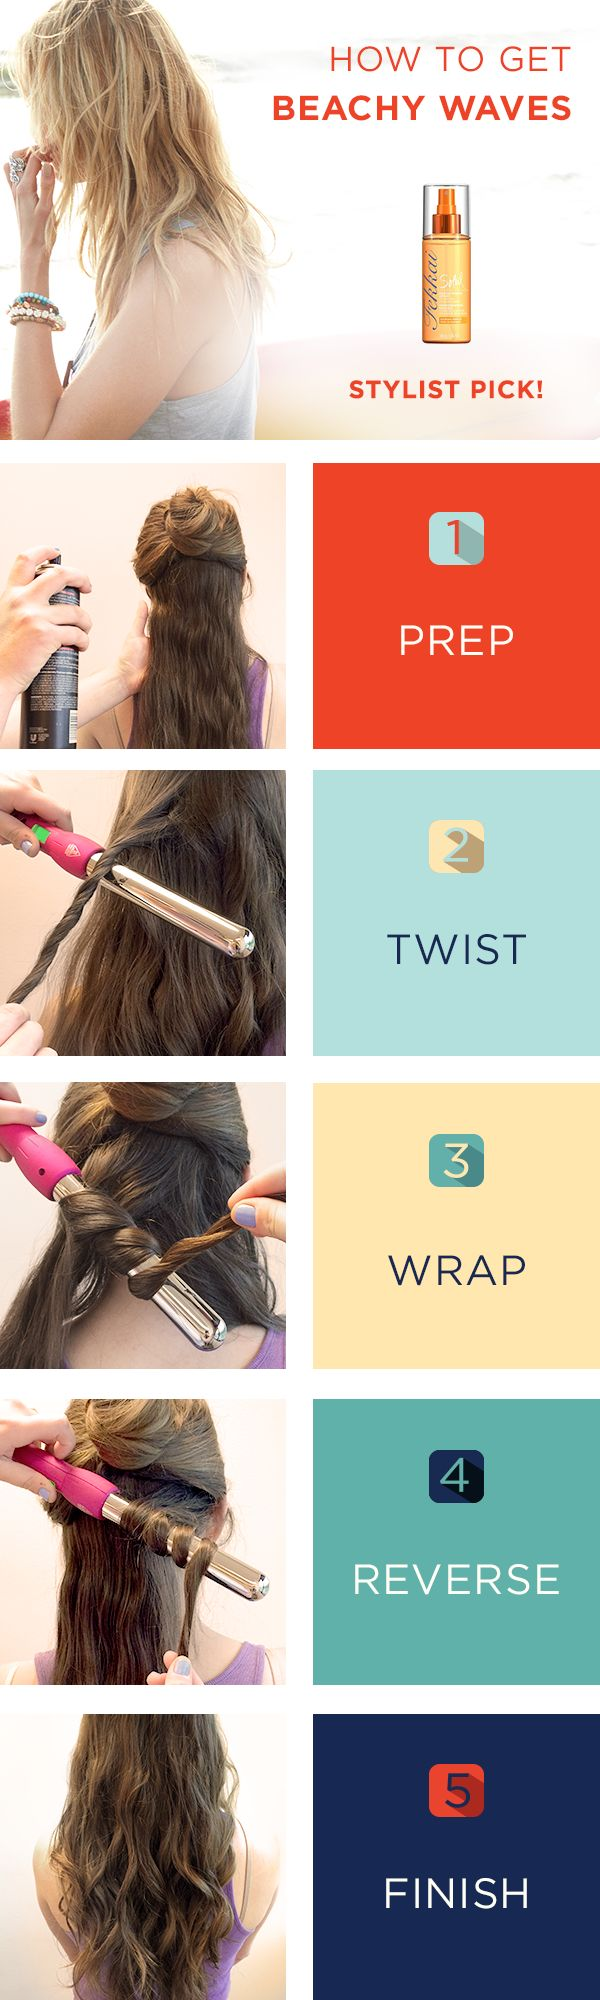 Our favorite summer hair style? Beachy waves. They're carefree, beautiful and easy! Try them for yourself with this tutorial. 1. Prep with Fekkai Soleil Beach Waves spray. Work with hair in sections, starting at the bottom. 2. One at a time, twist a section. 3. Then wrap the twist around a curling iron, leaving the bottom inch free. 4. Alternate between wrapping the strands clockwise and counterclockwise. 5. Finish with your favorite hairspray.